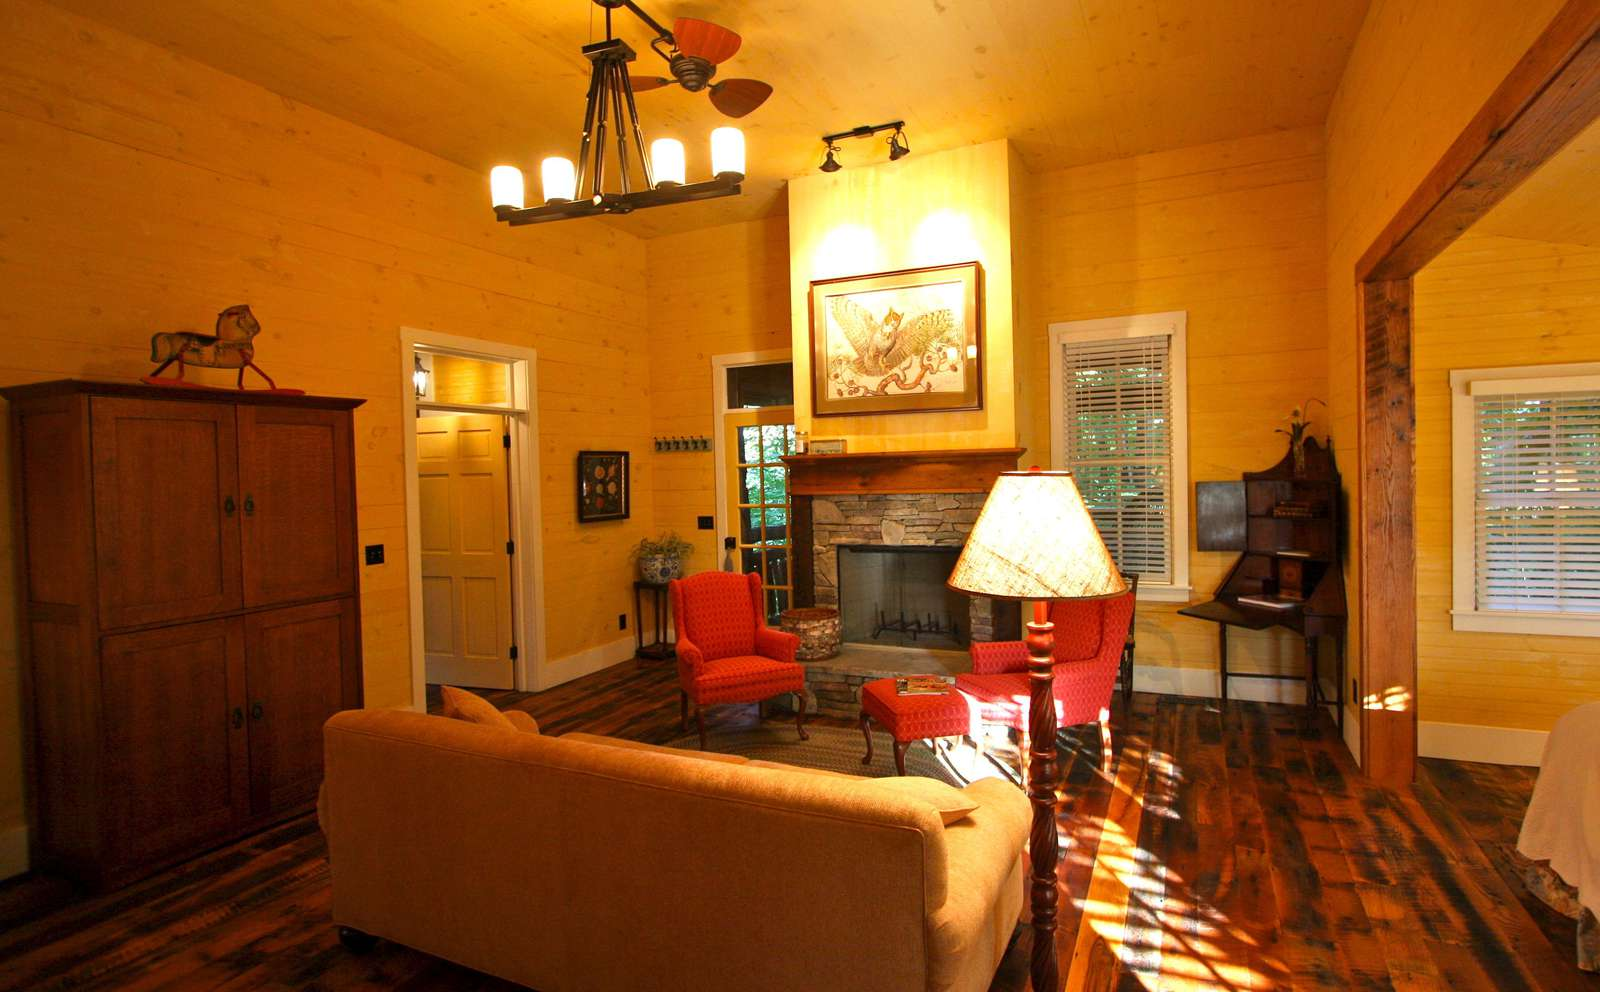 Living room with fireplace and backdoor to the porch